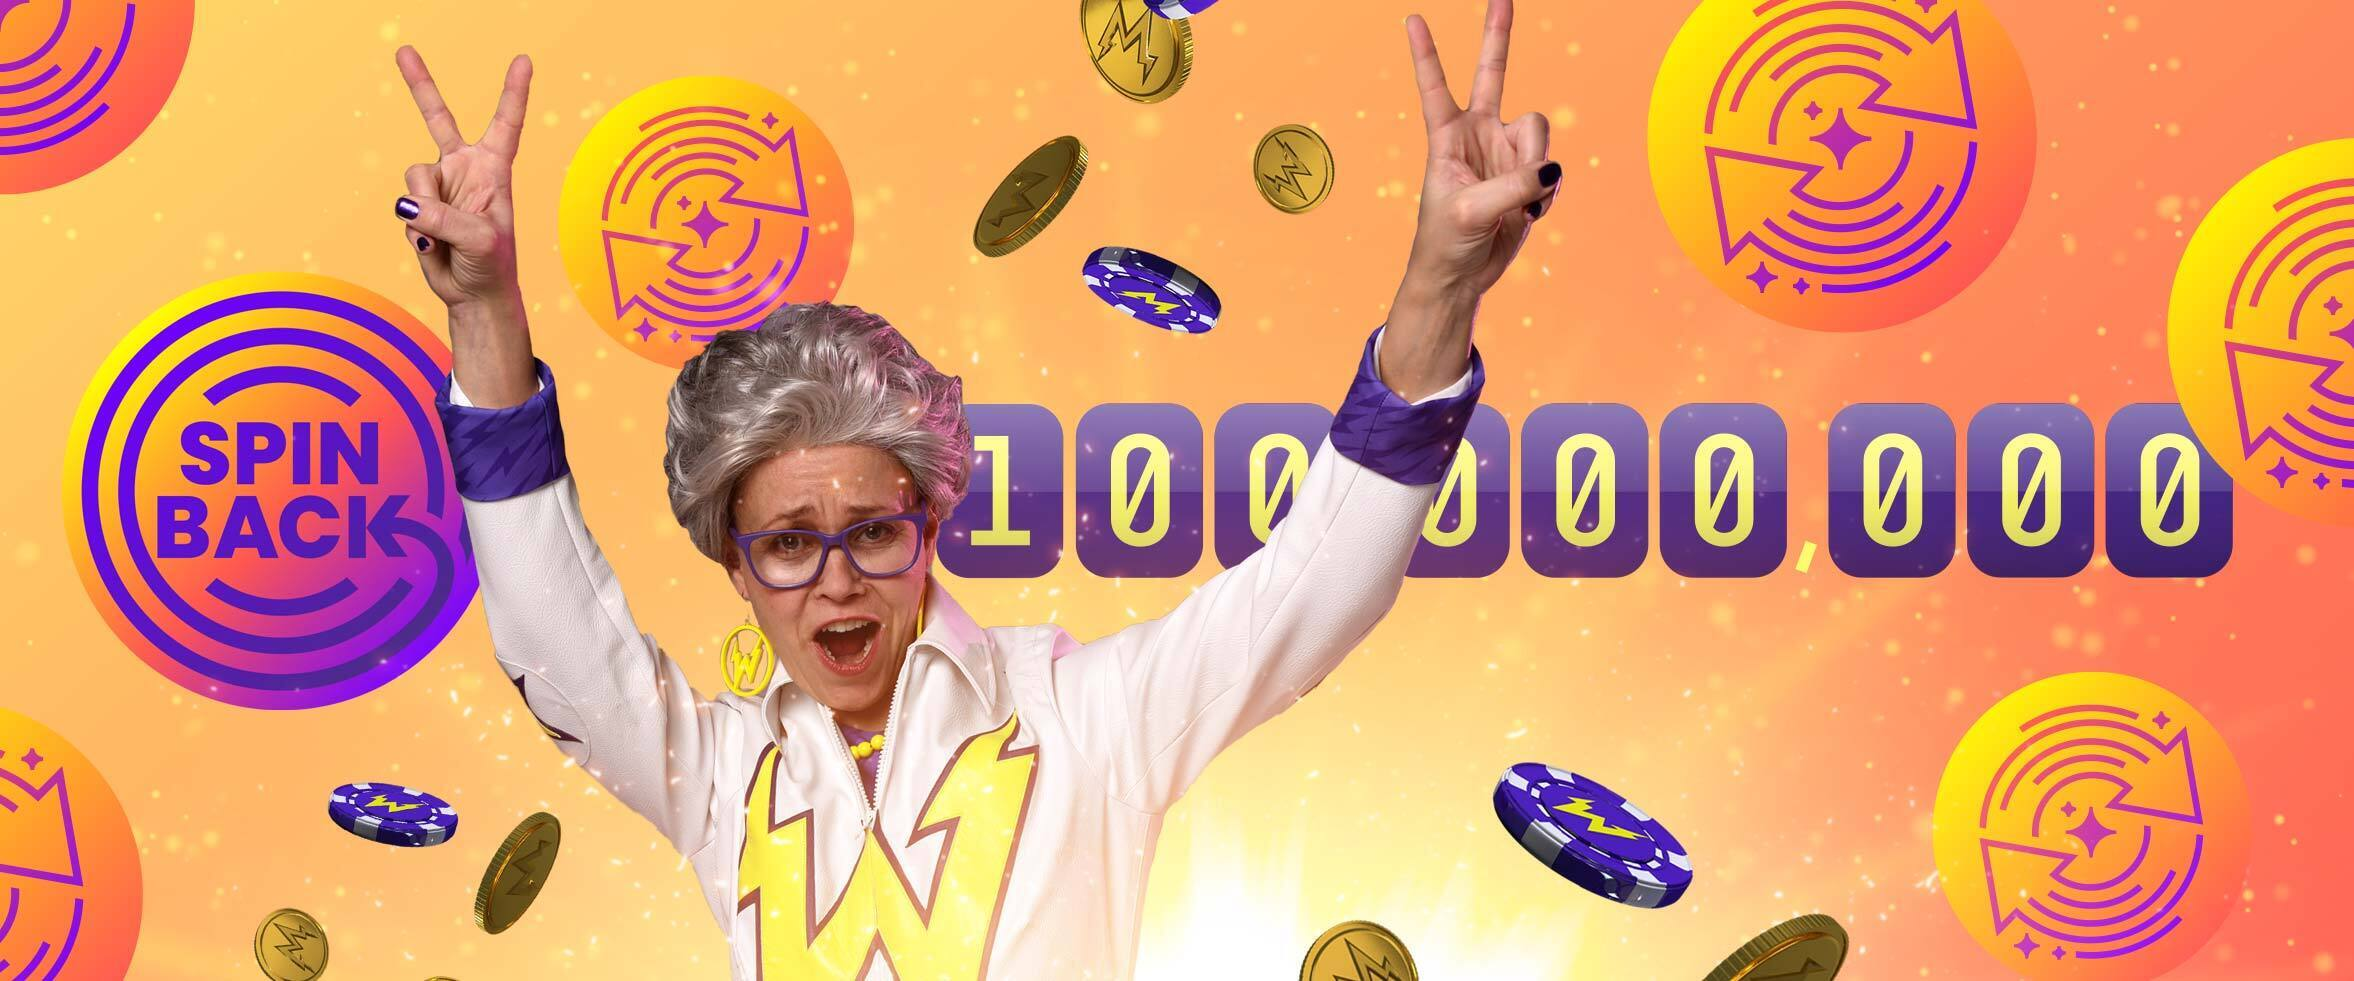 €10,000 Prize Awarded for the 100 Millionth Free Spin!